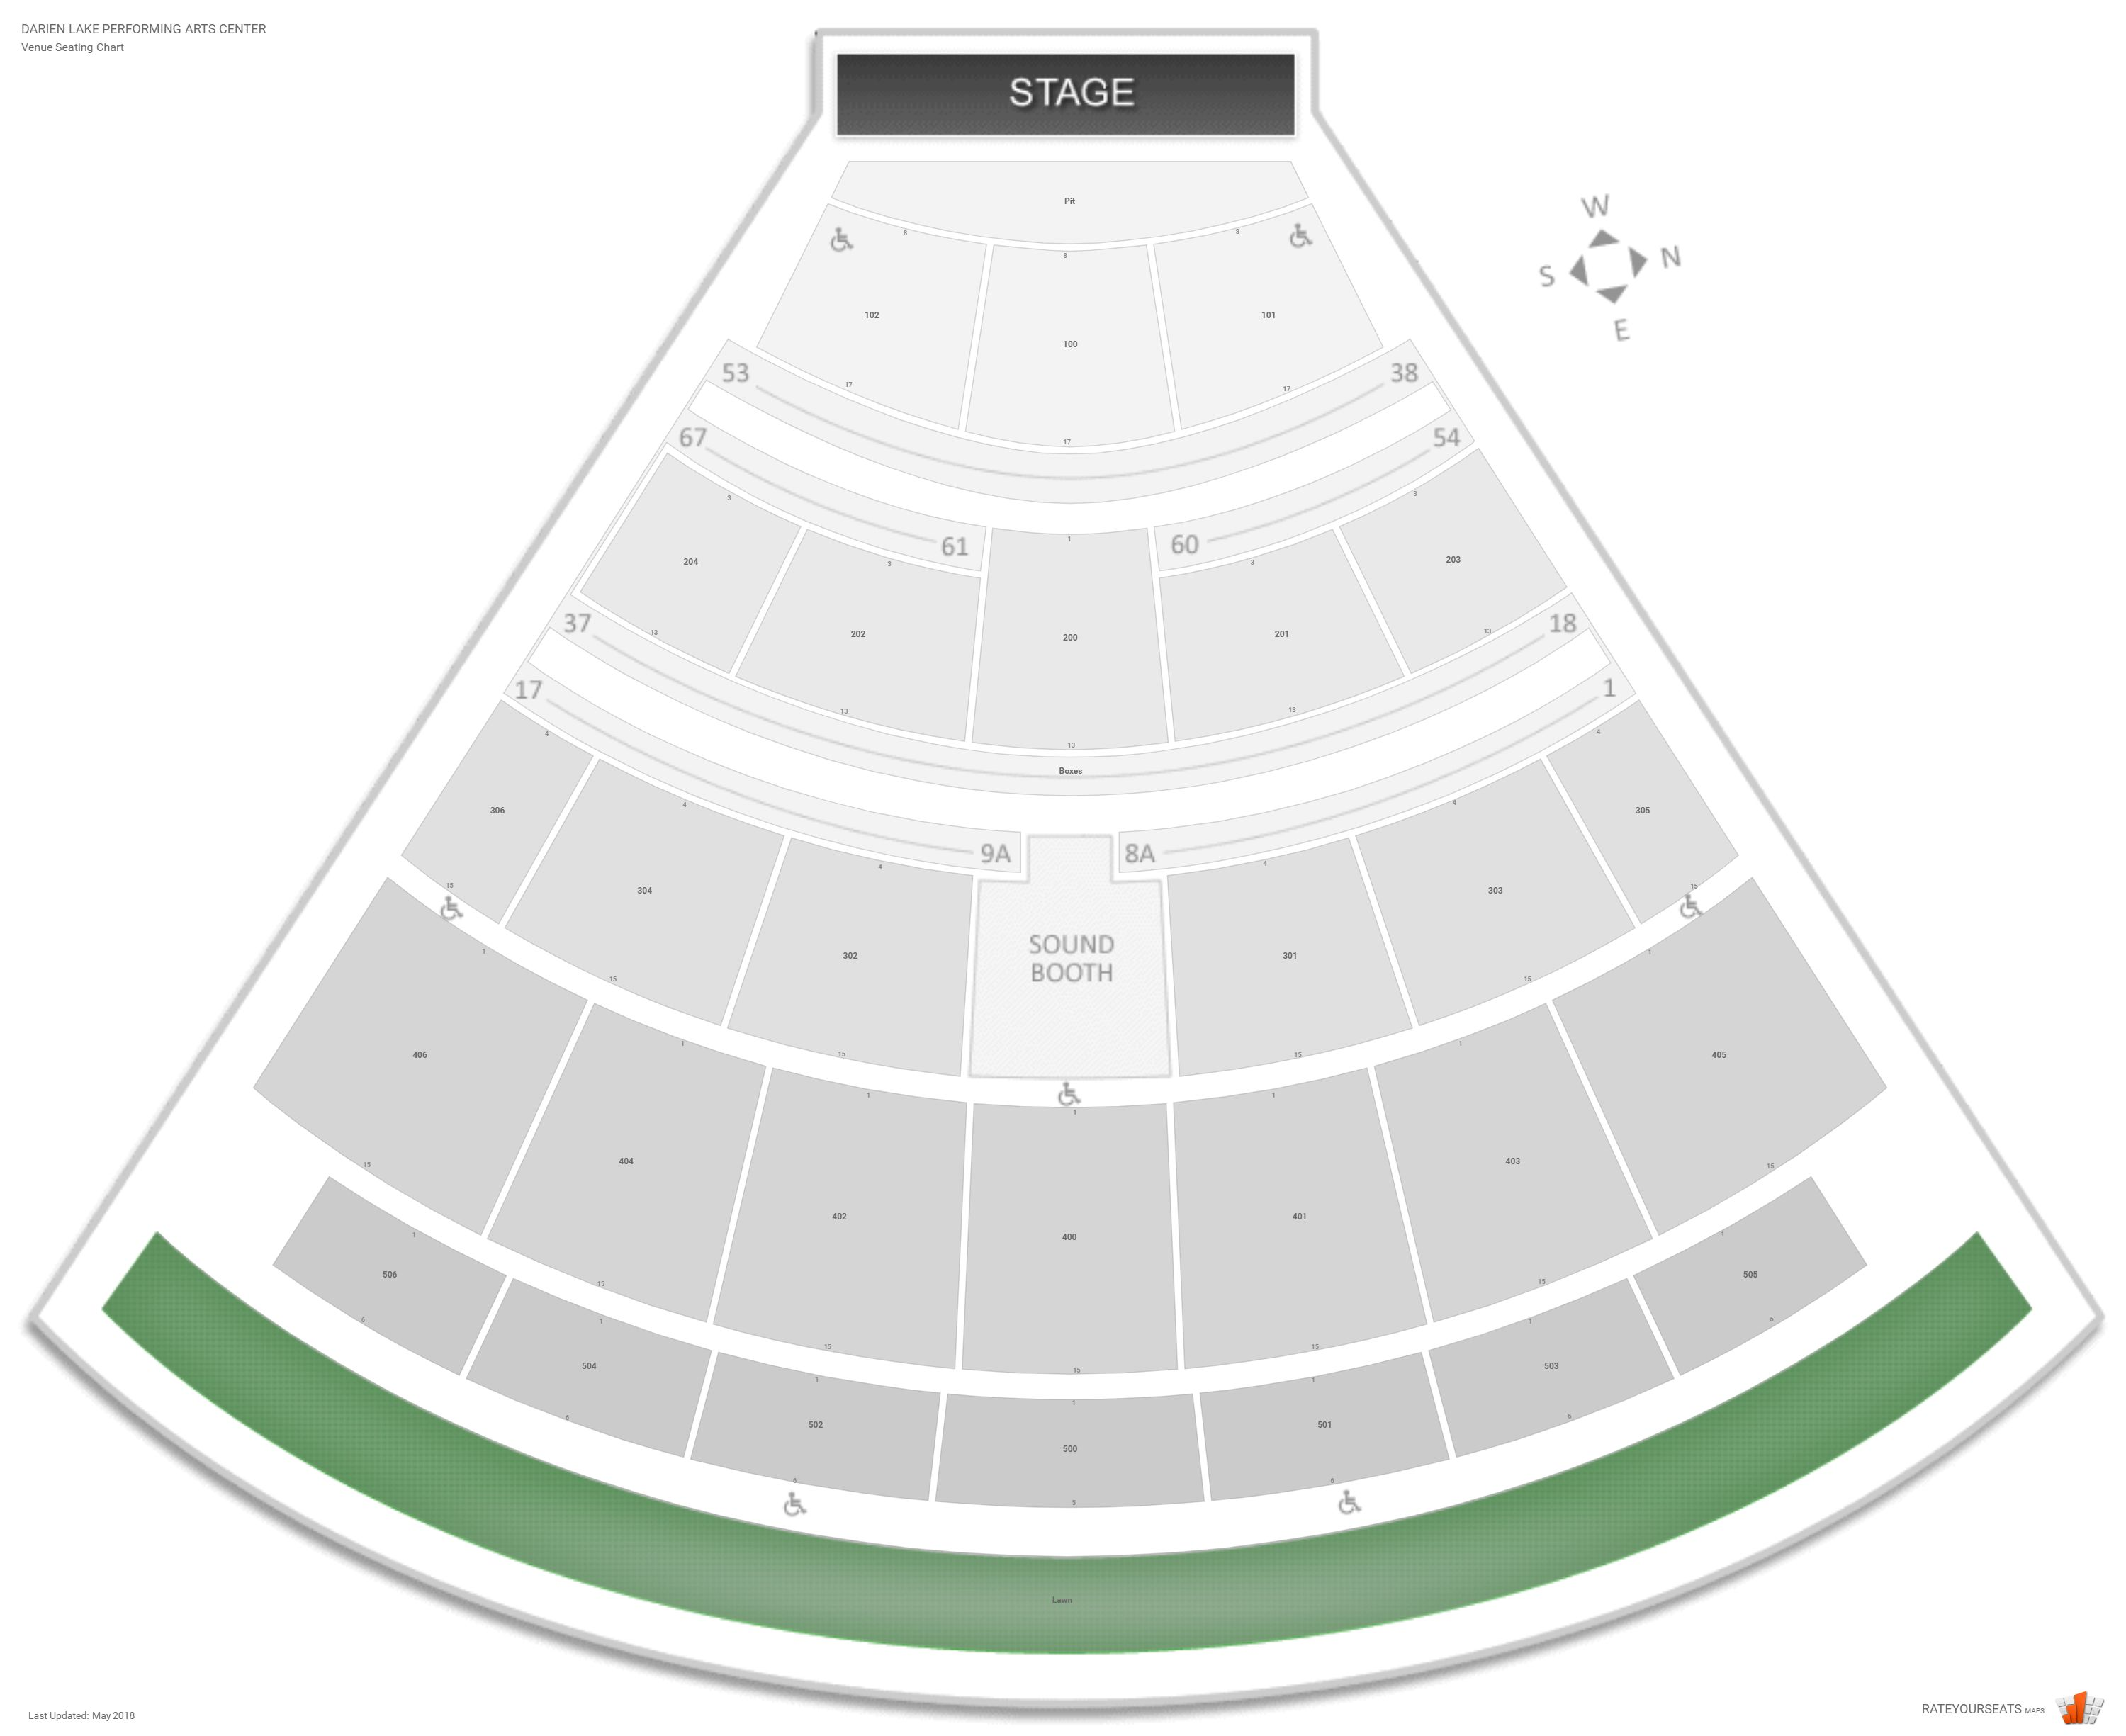 Darien Lake Performing Arts Center Seating Chart With Row Numbers